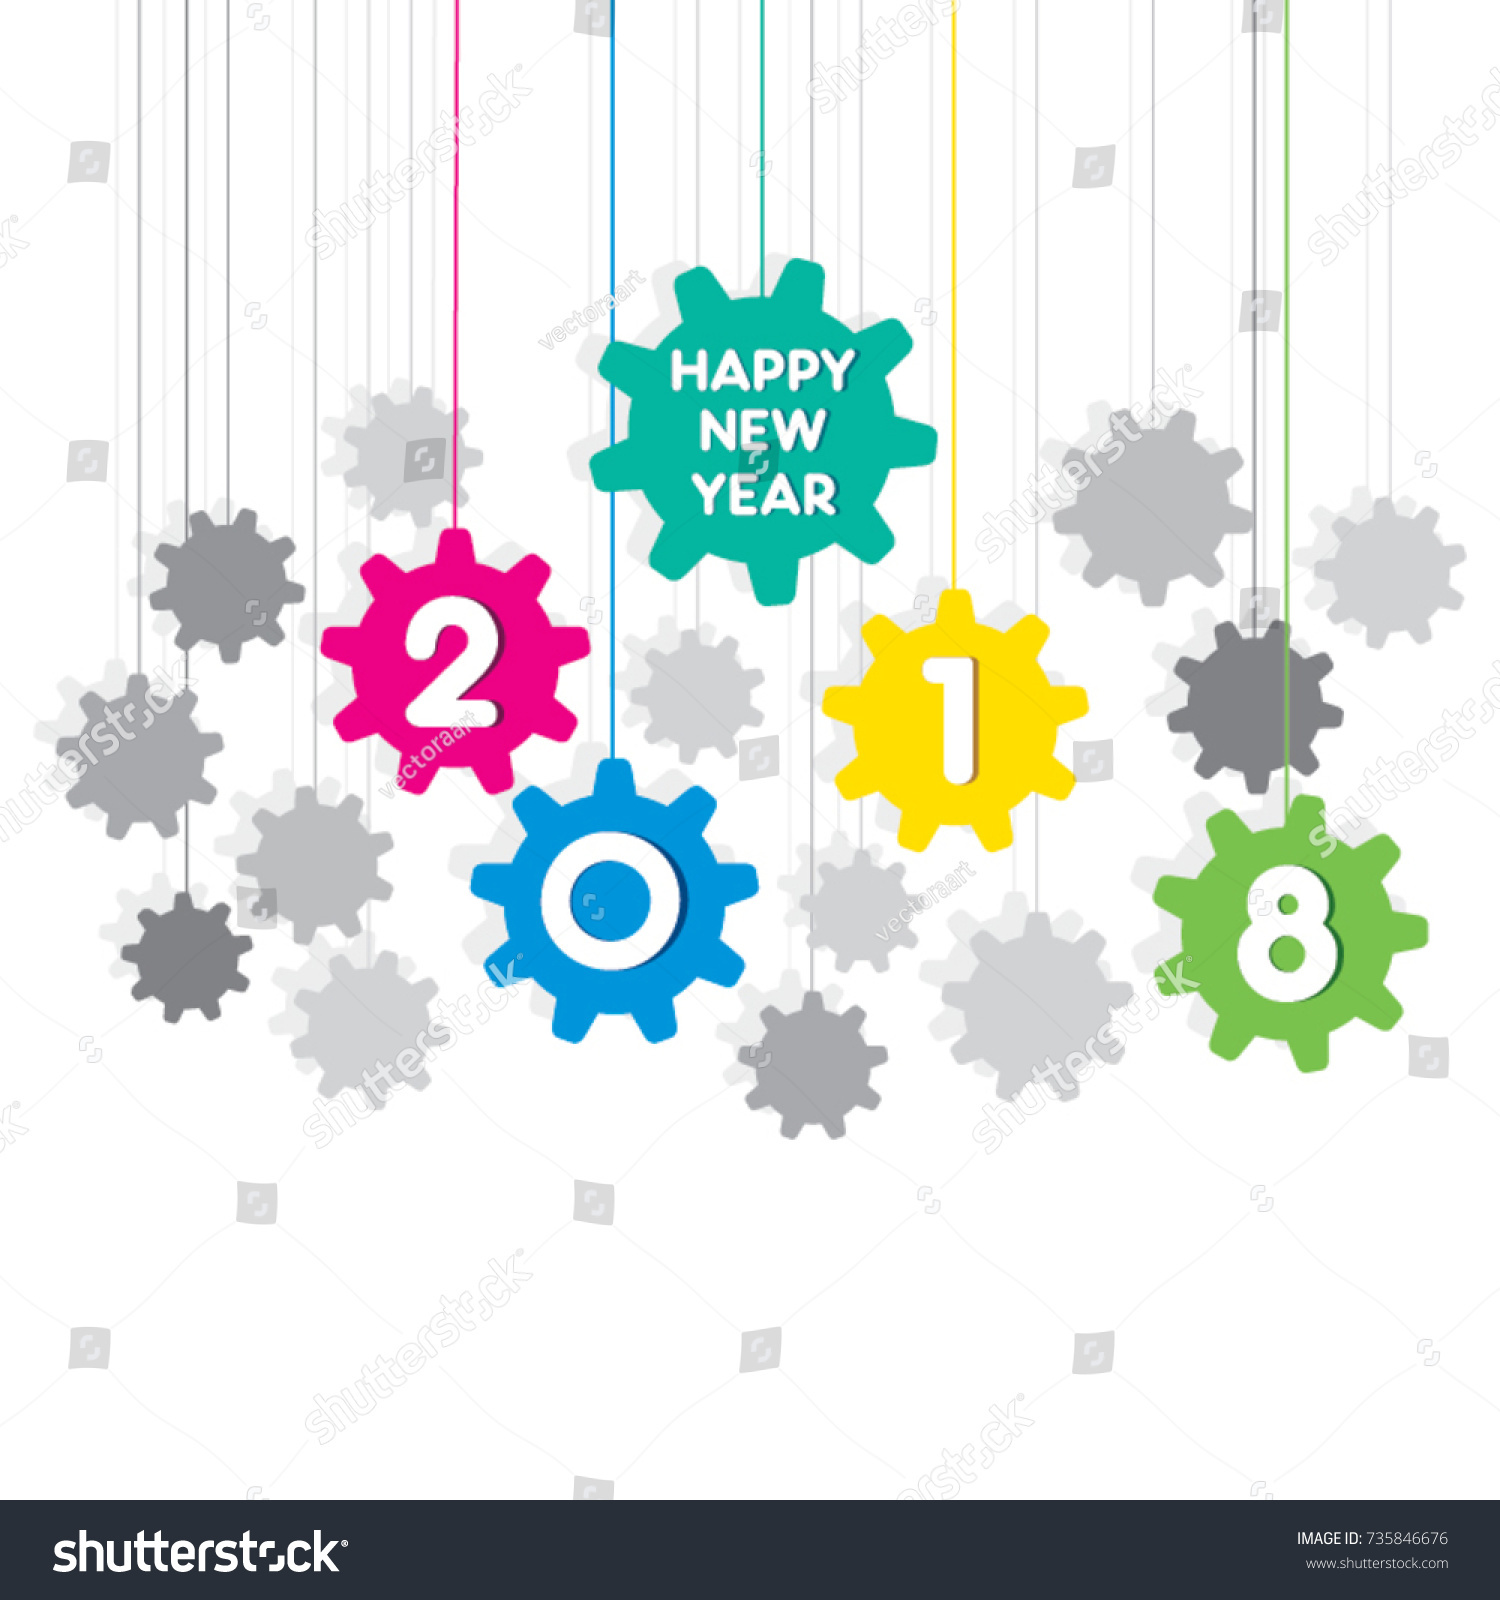 creative new year 2018 greeting design using hanging gear shape pattern